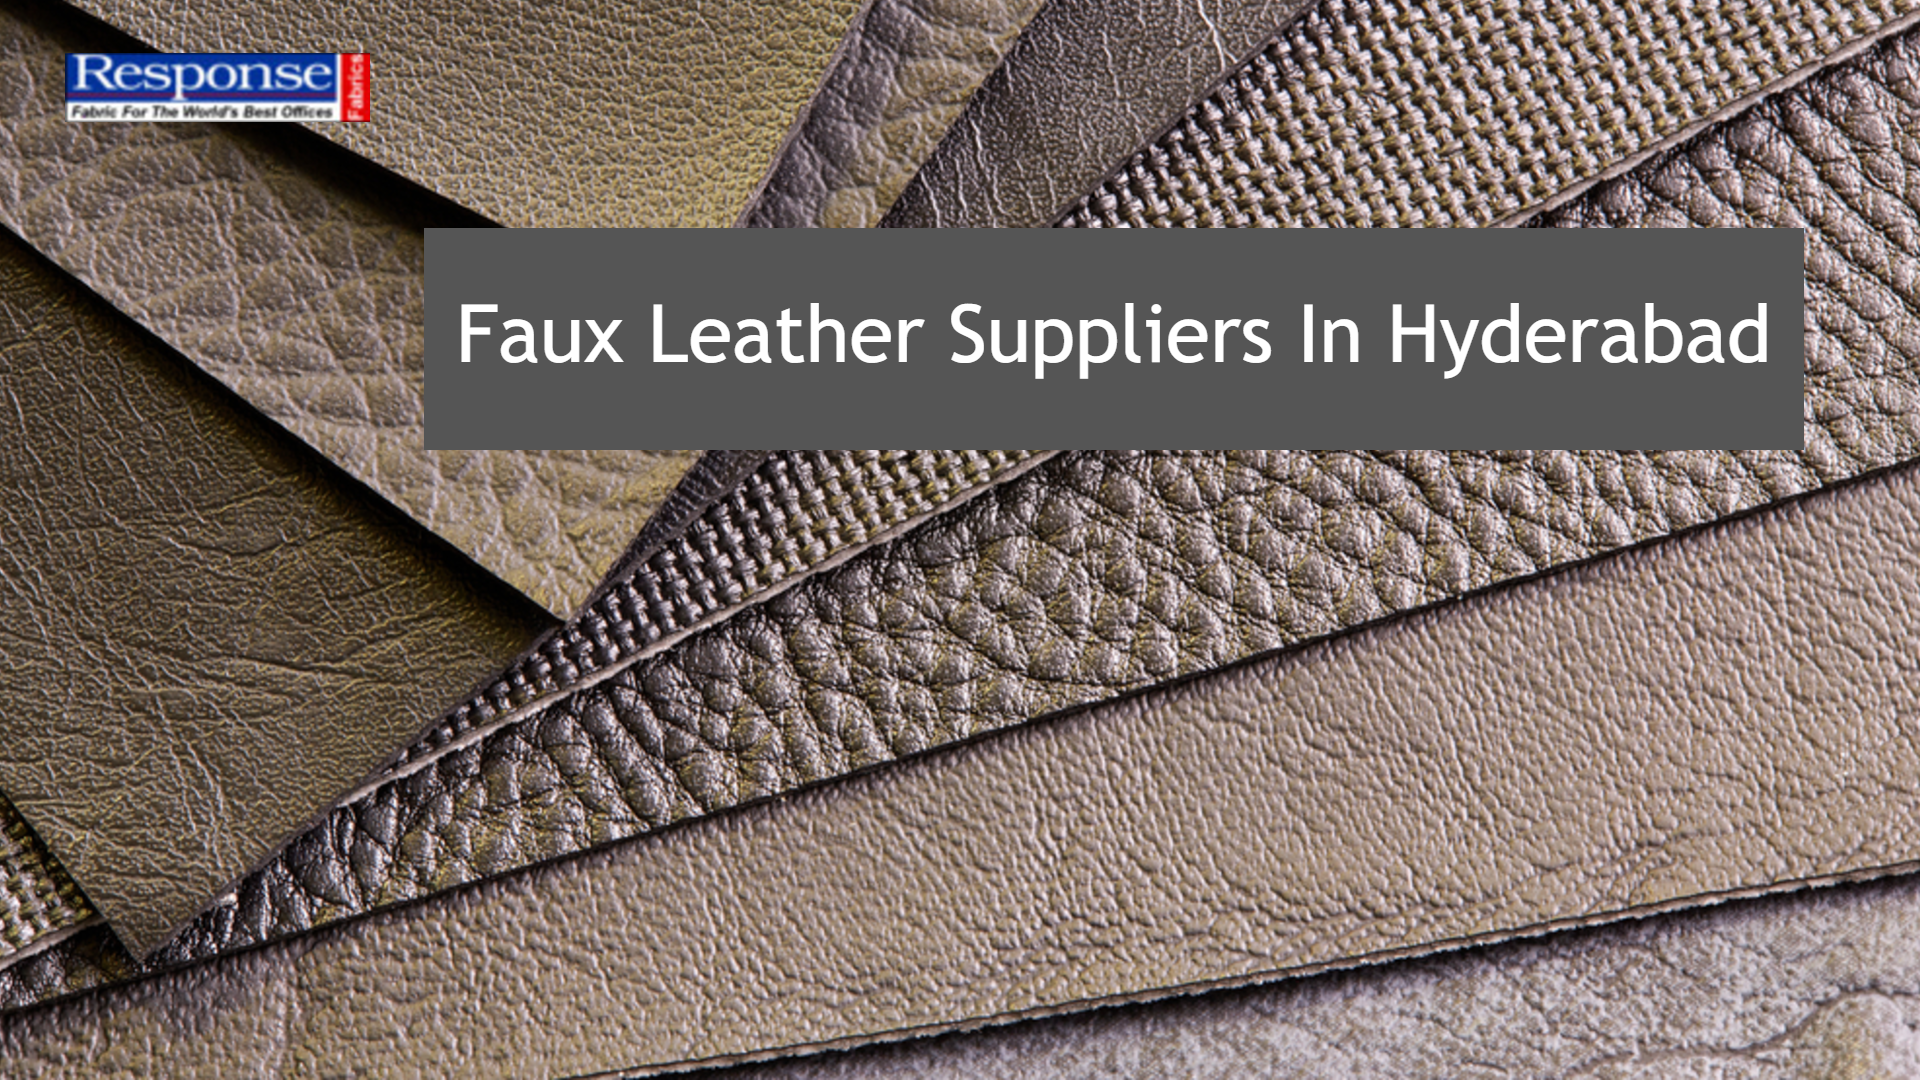 faux leather suppliers in Hyderabad